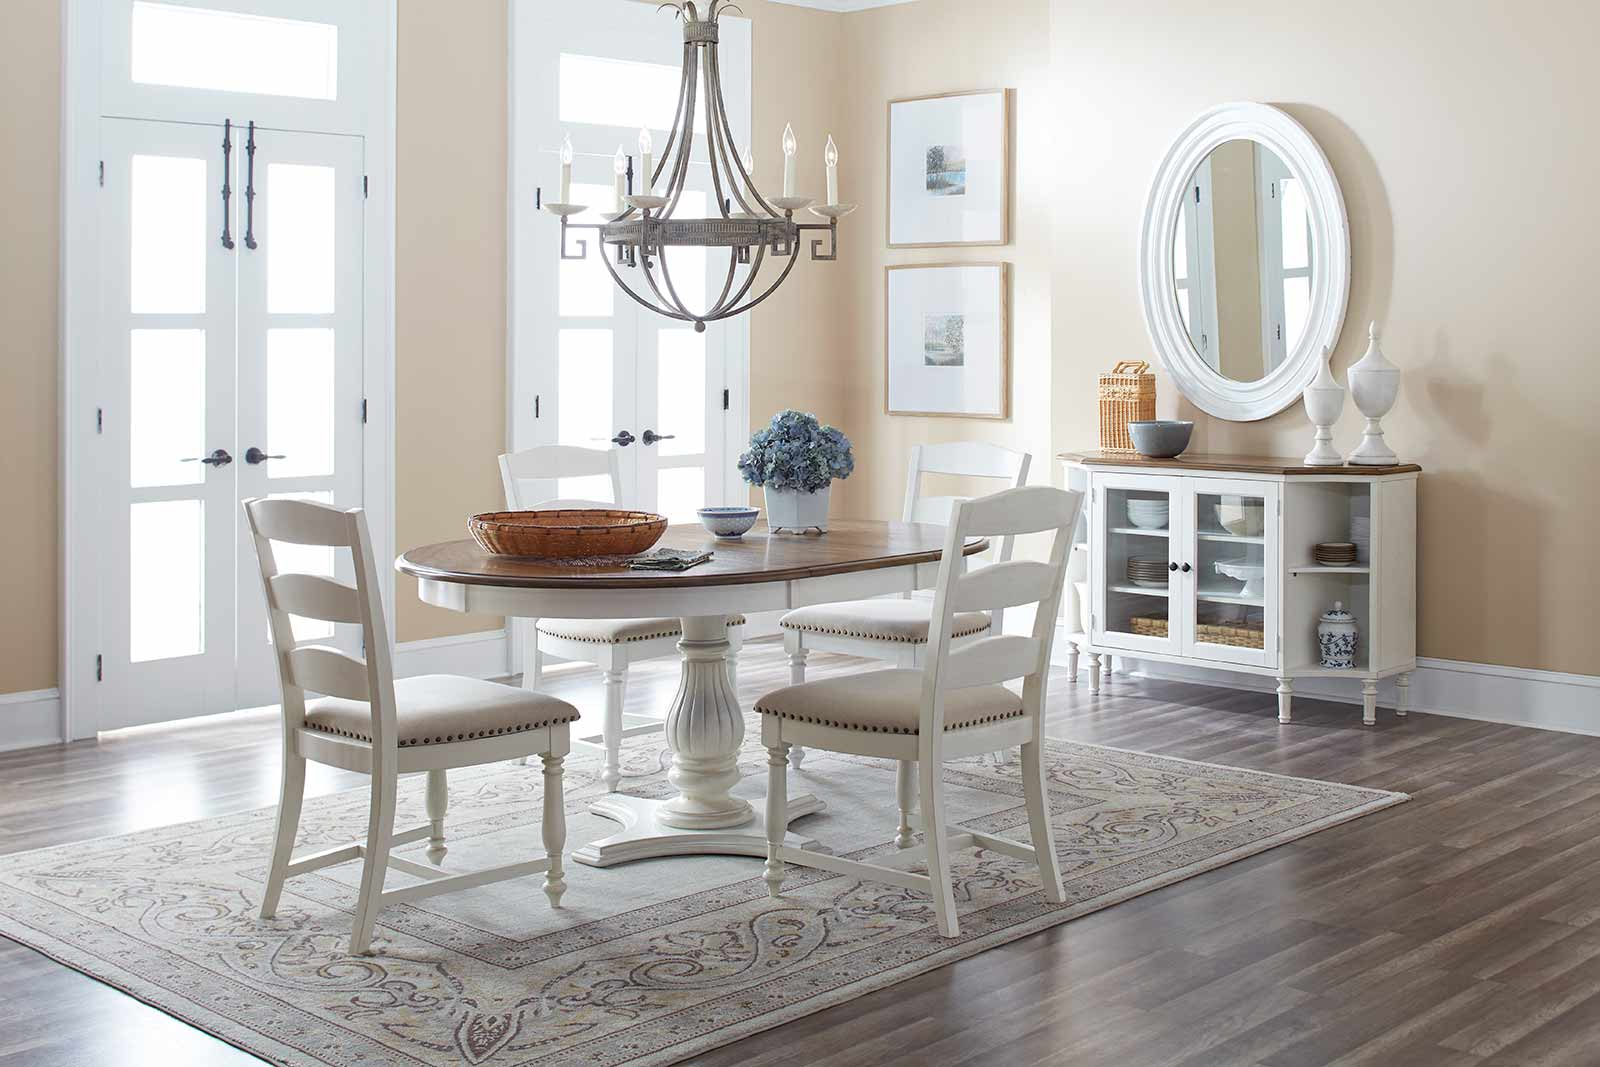 Castle Hill Antique White Oak Round To Oval Dining Table By Jofran Furniture